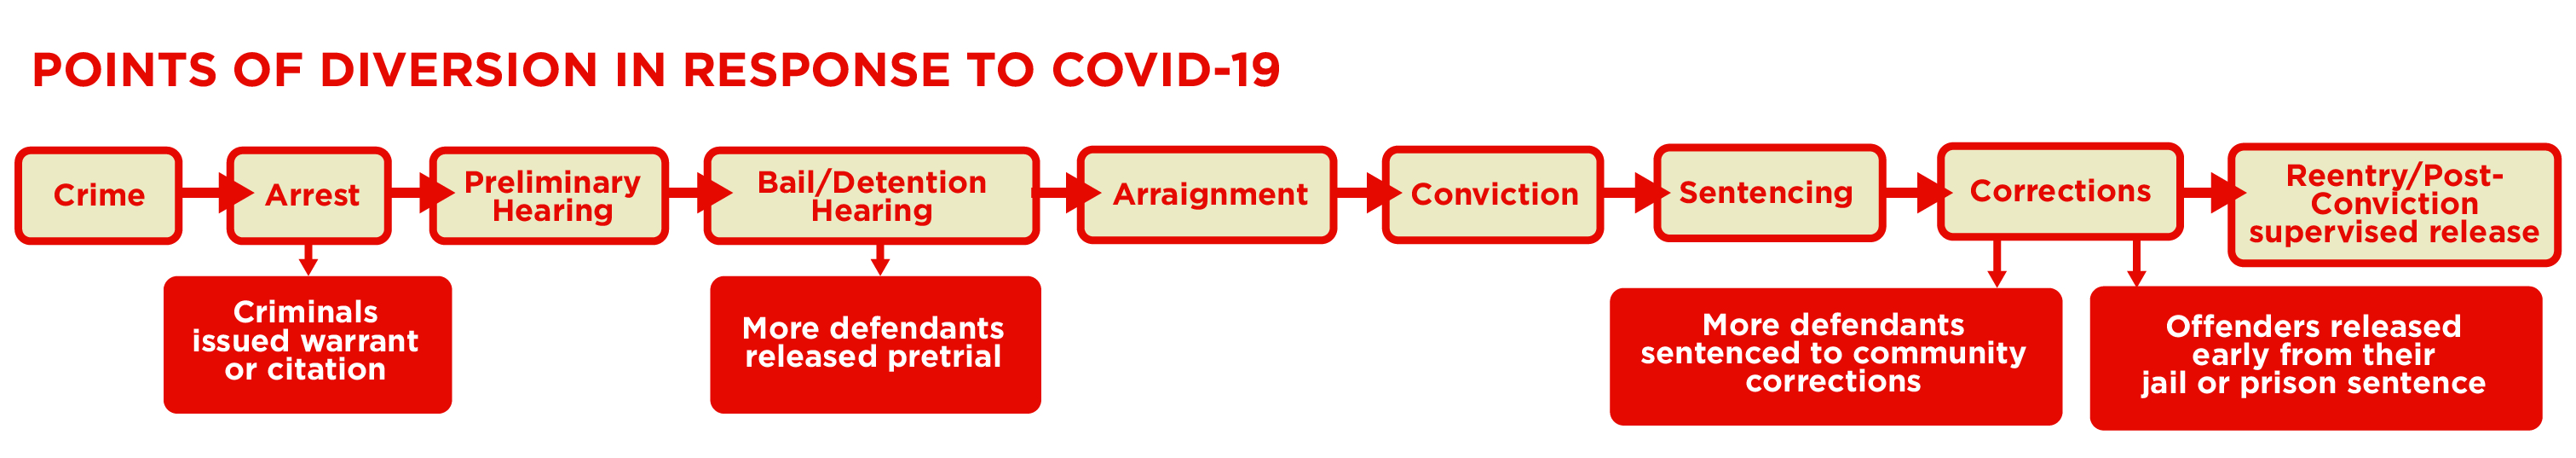 From Policing to Reentry: The Implications of COVID-19 for the Entire Criminal Justice System